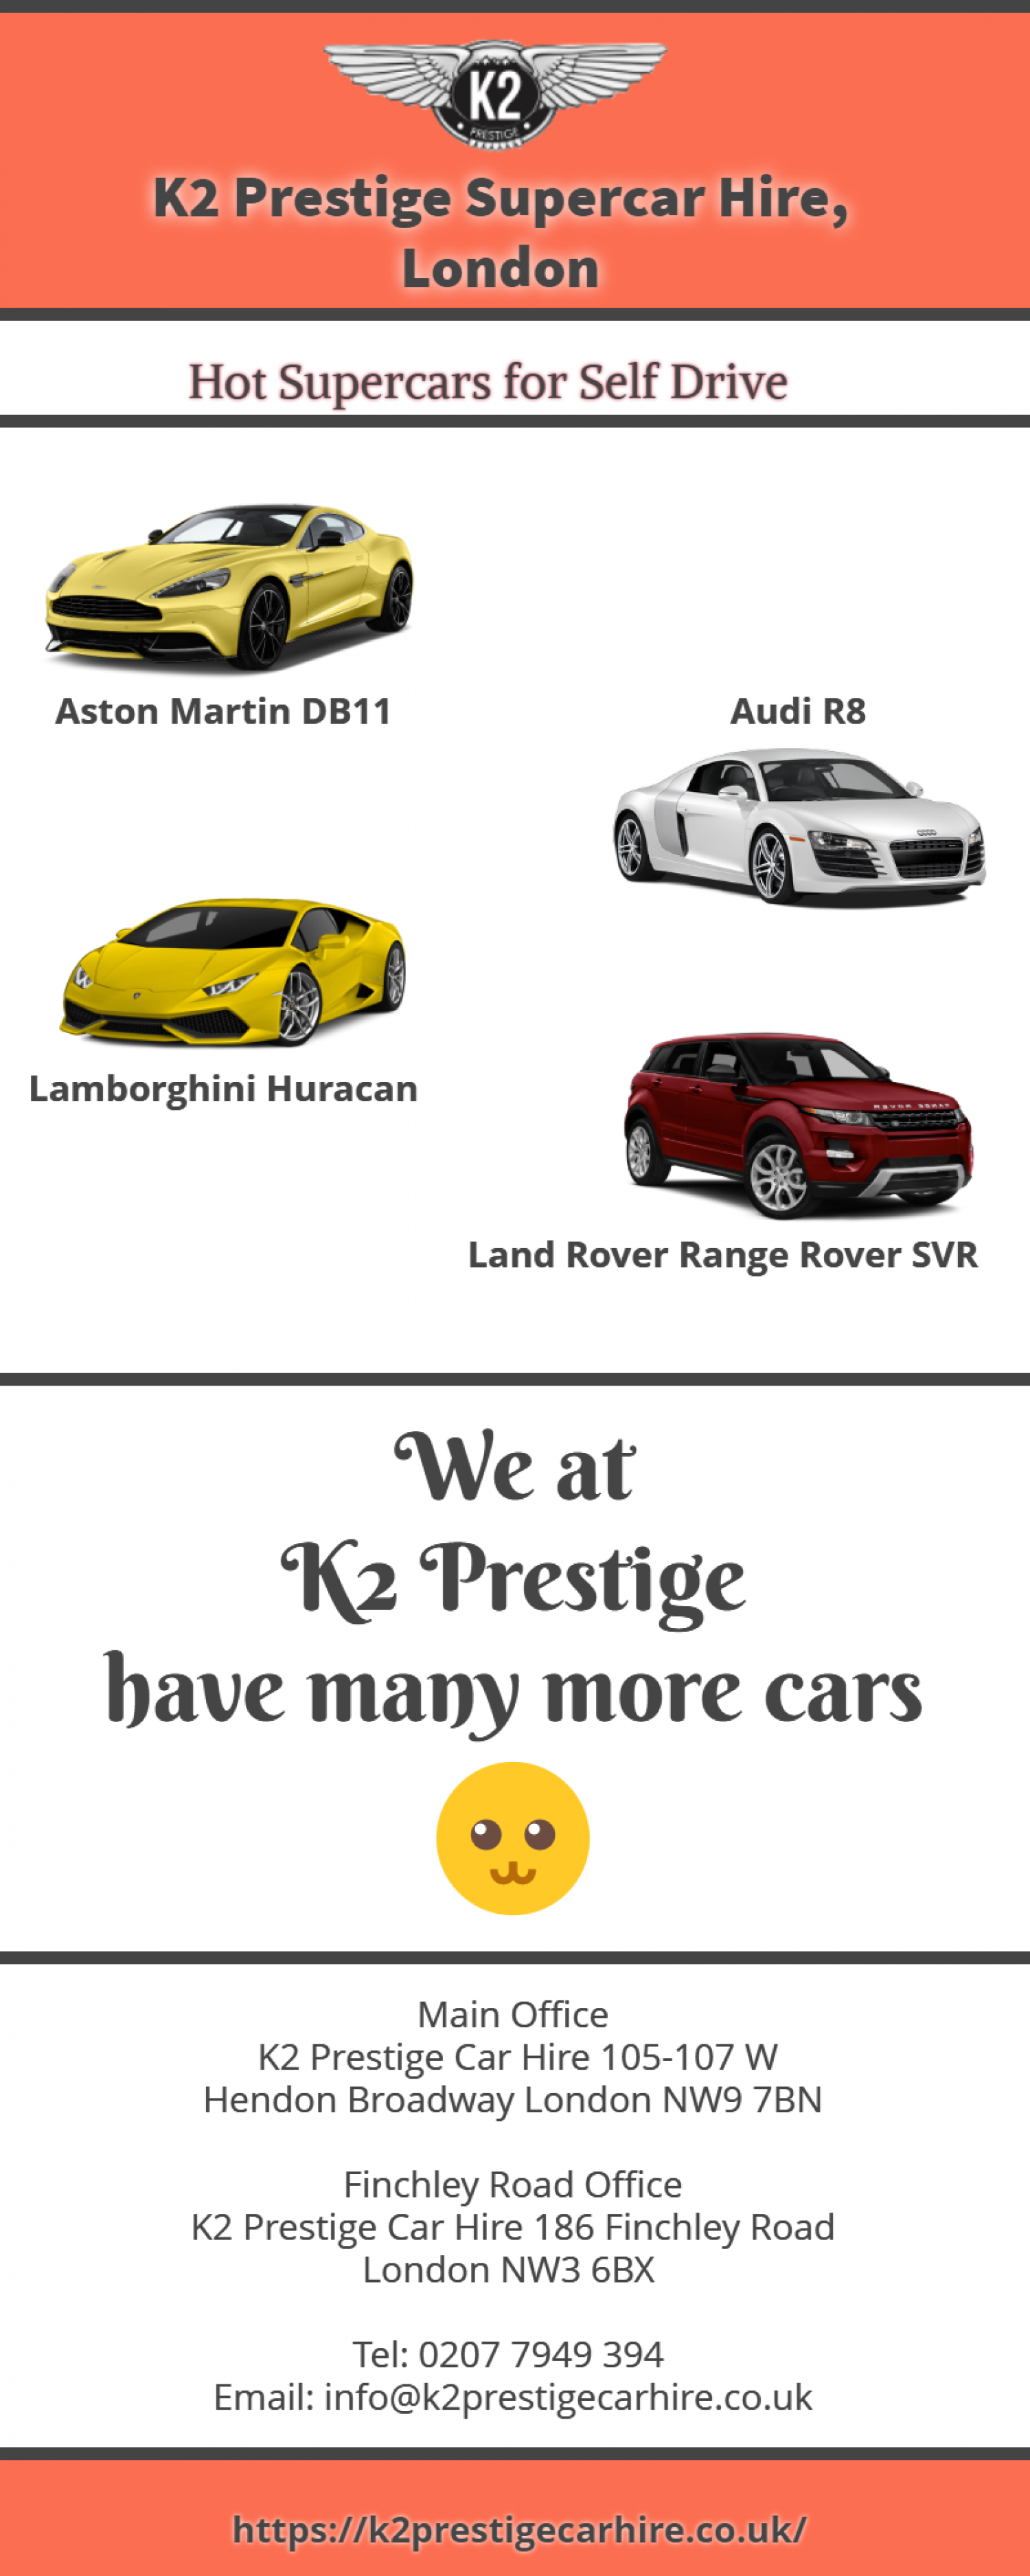 Rent a supercar from K2 Prestige for an awesome self-drive experience Infographic